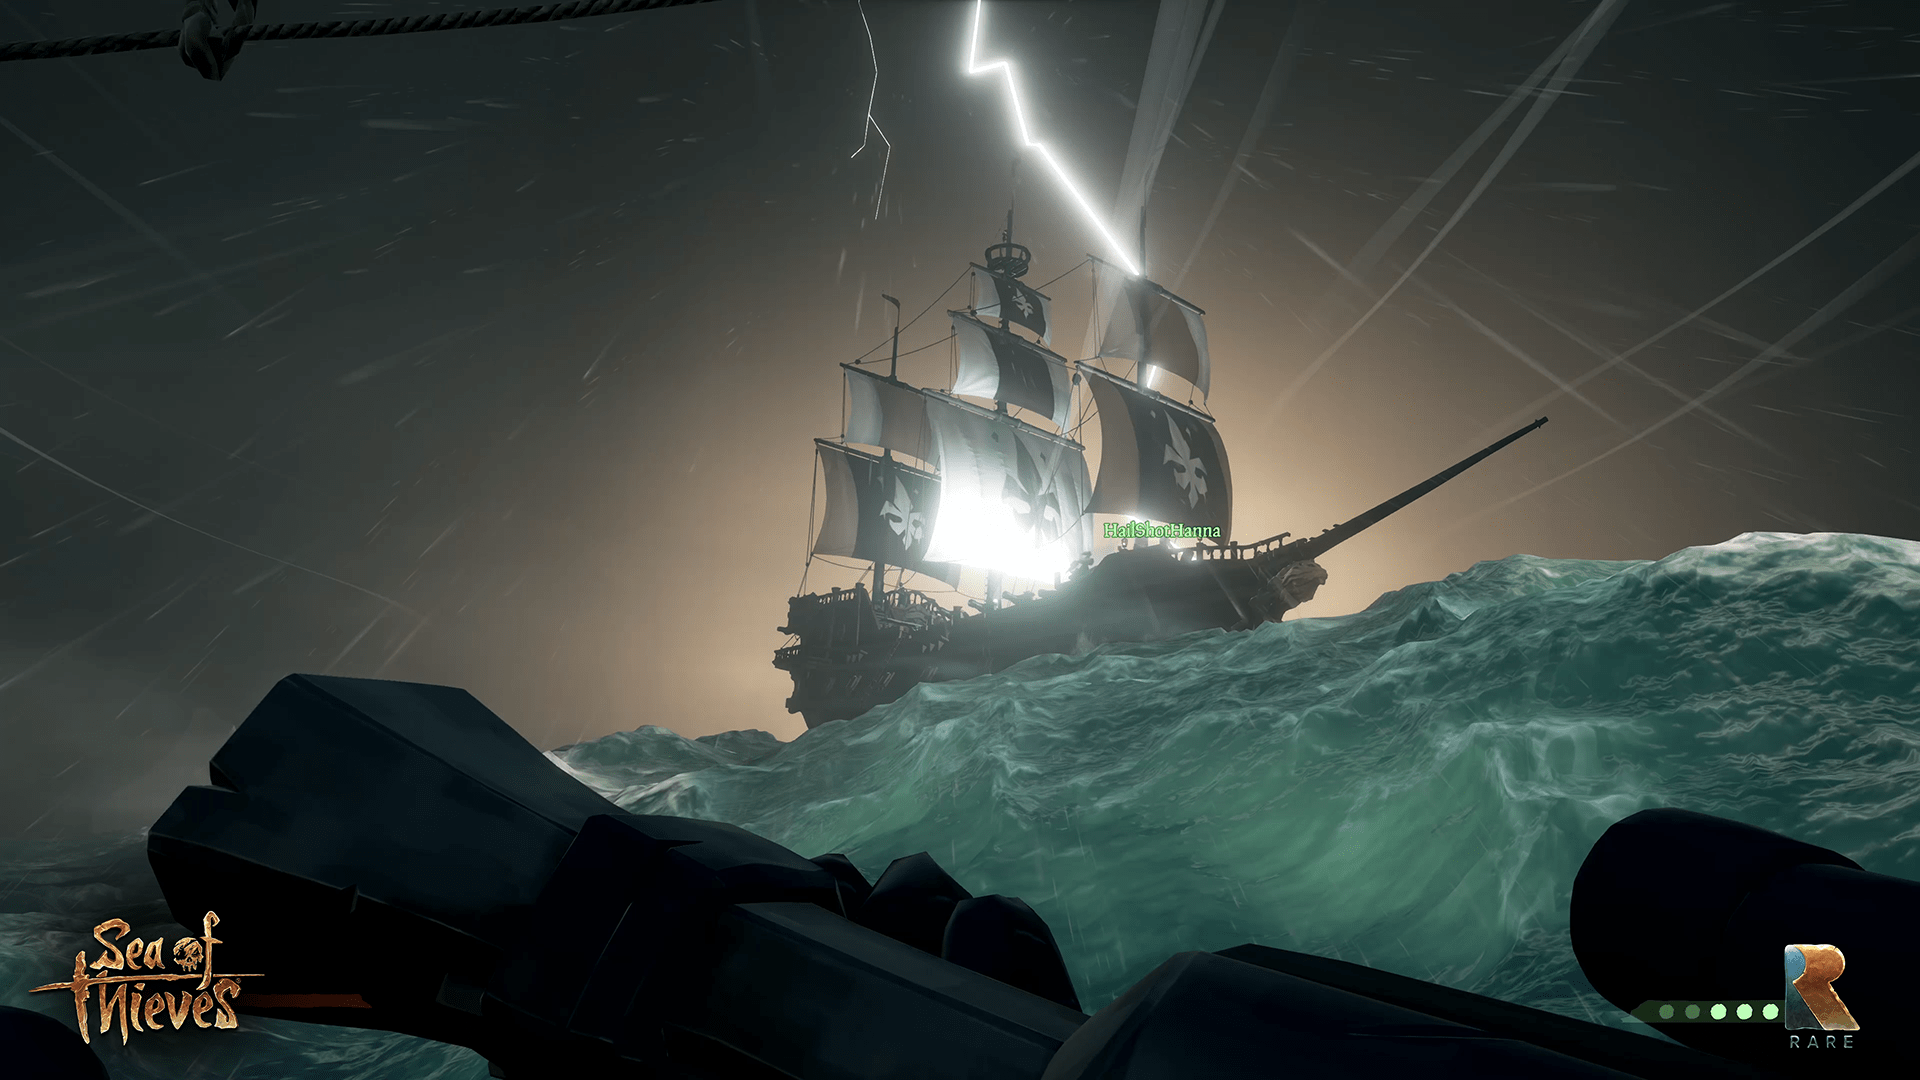 How Sea of Thieves Could Be Microsoft's Next Big Franchise